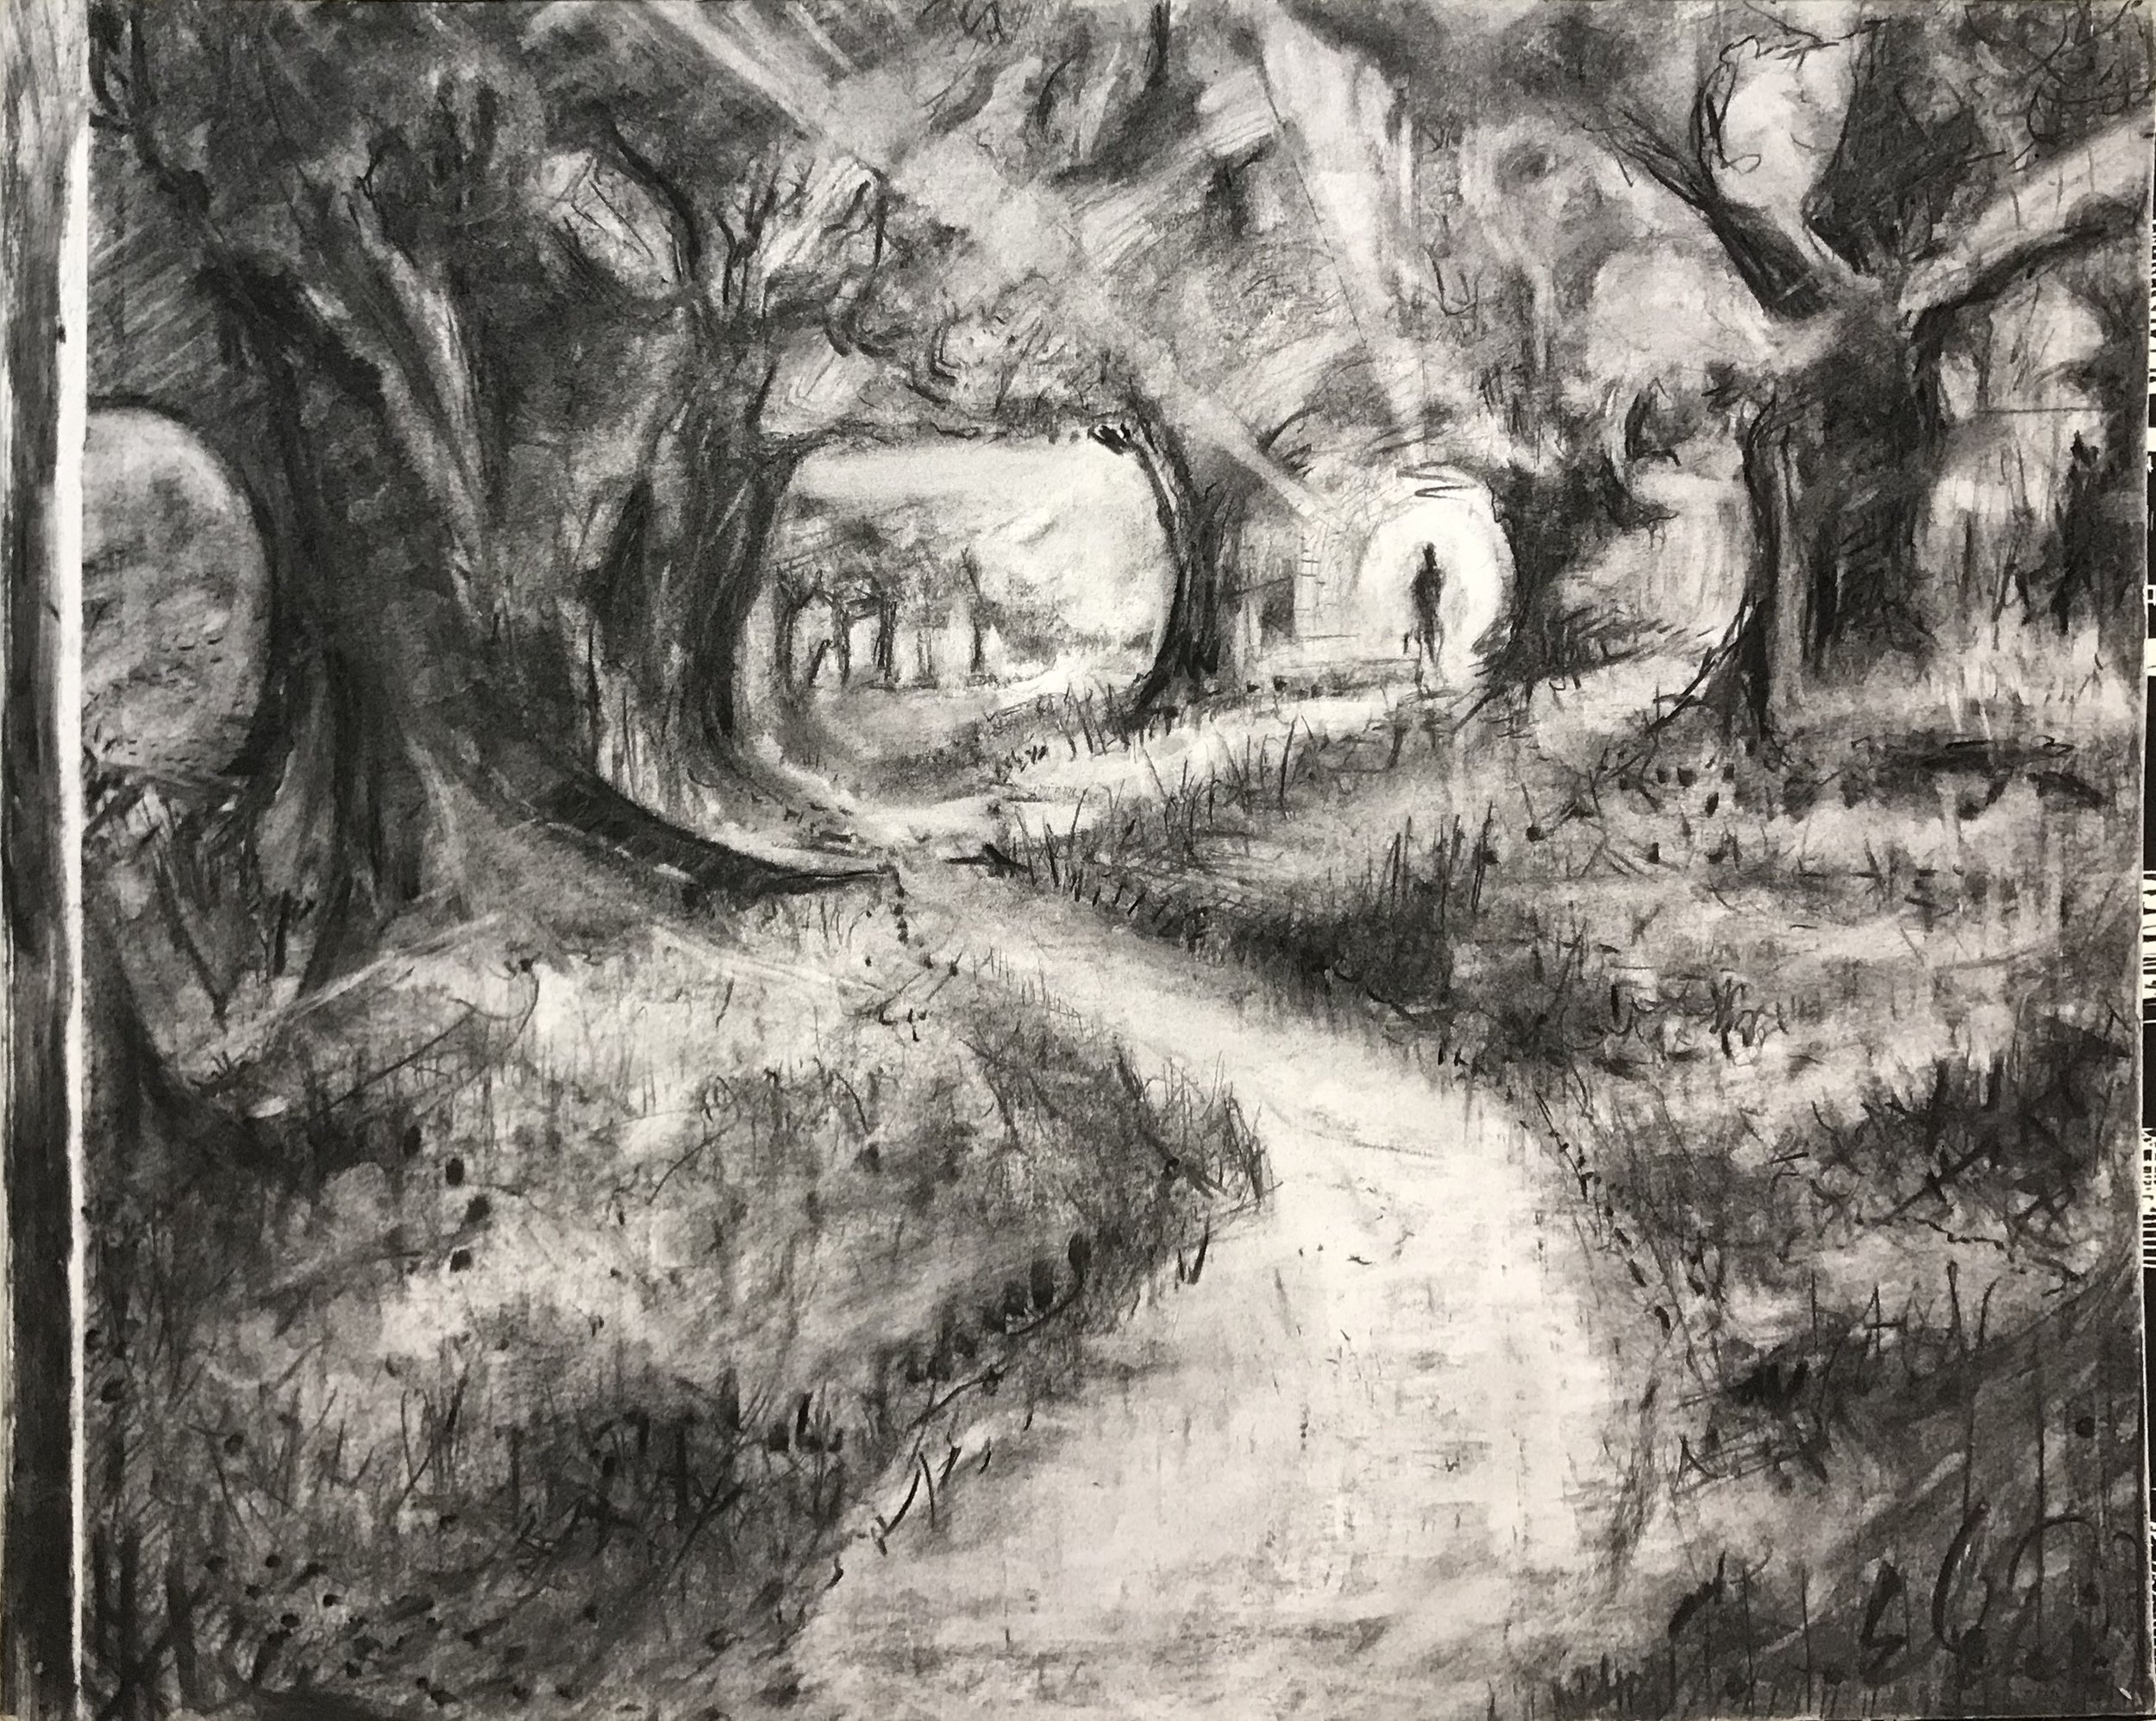 Forest, charcoal on paper, 2014